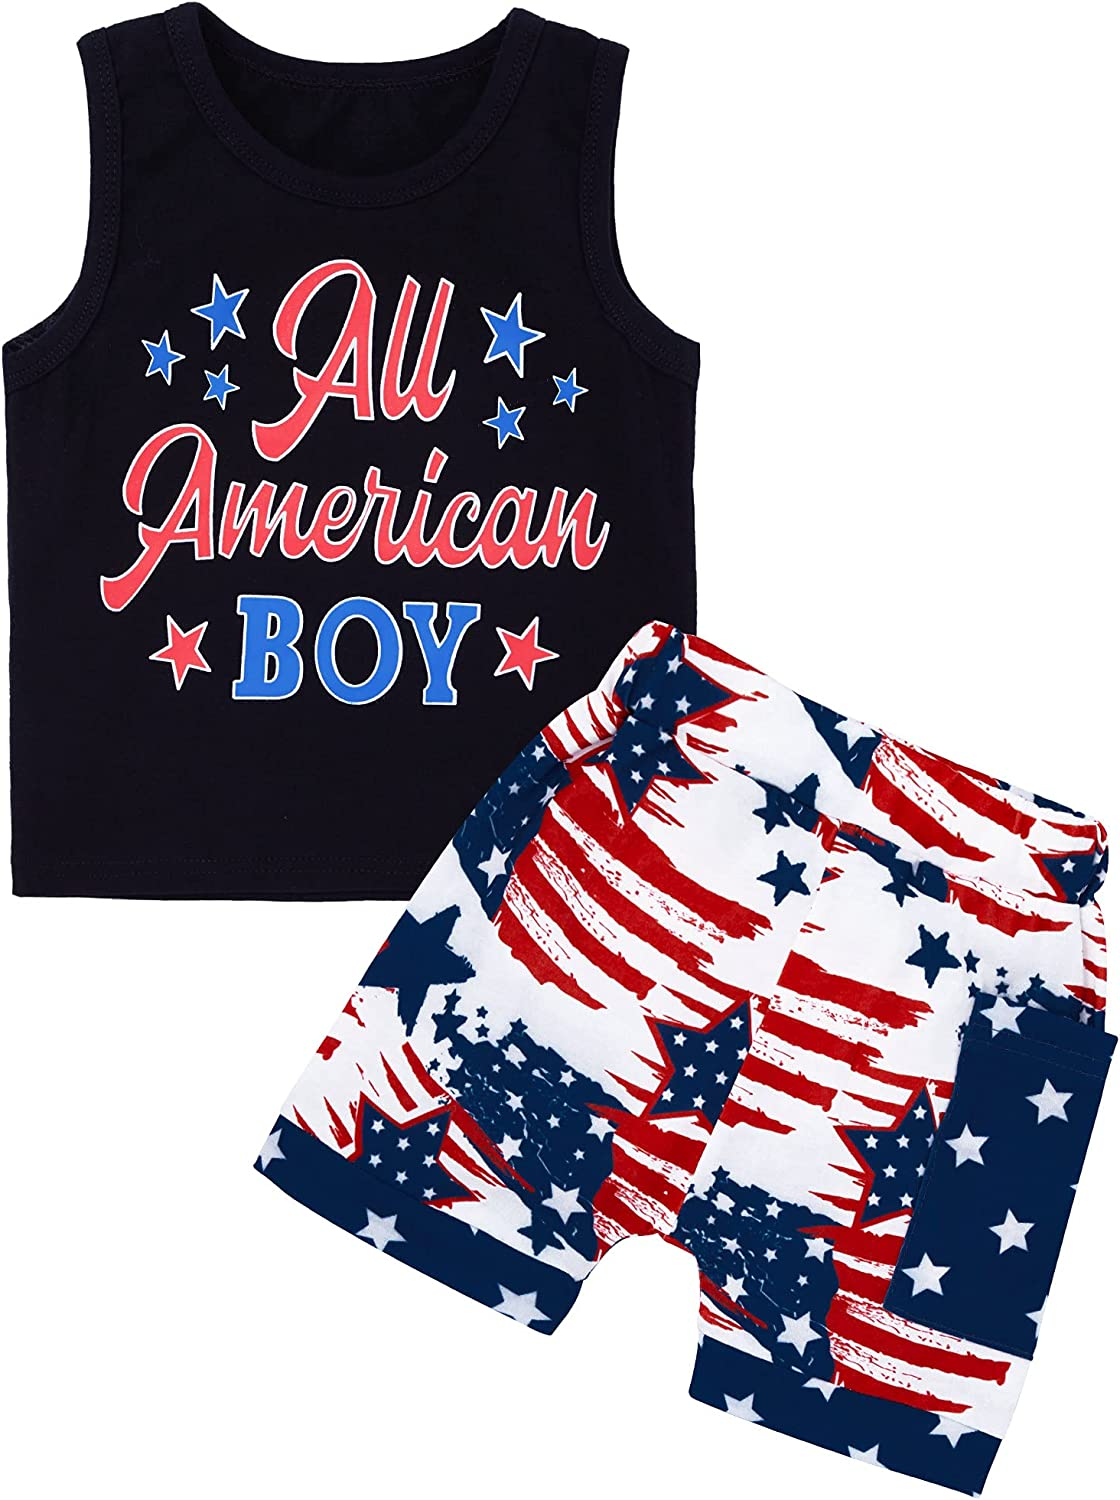 Toddler Boy Clothes Summer Outfits, Baby Boy Clothes Sets with Short Sleeve + Short Pants 2Pcs Set